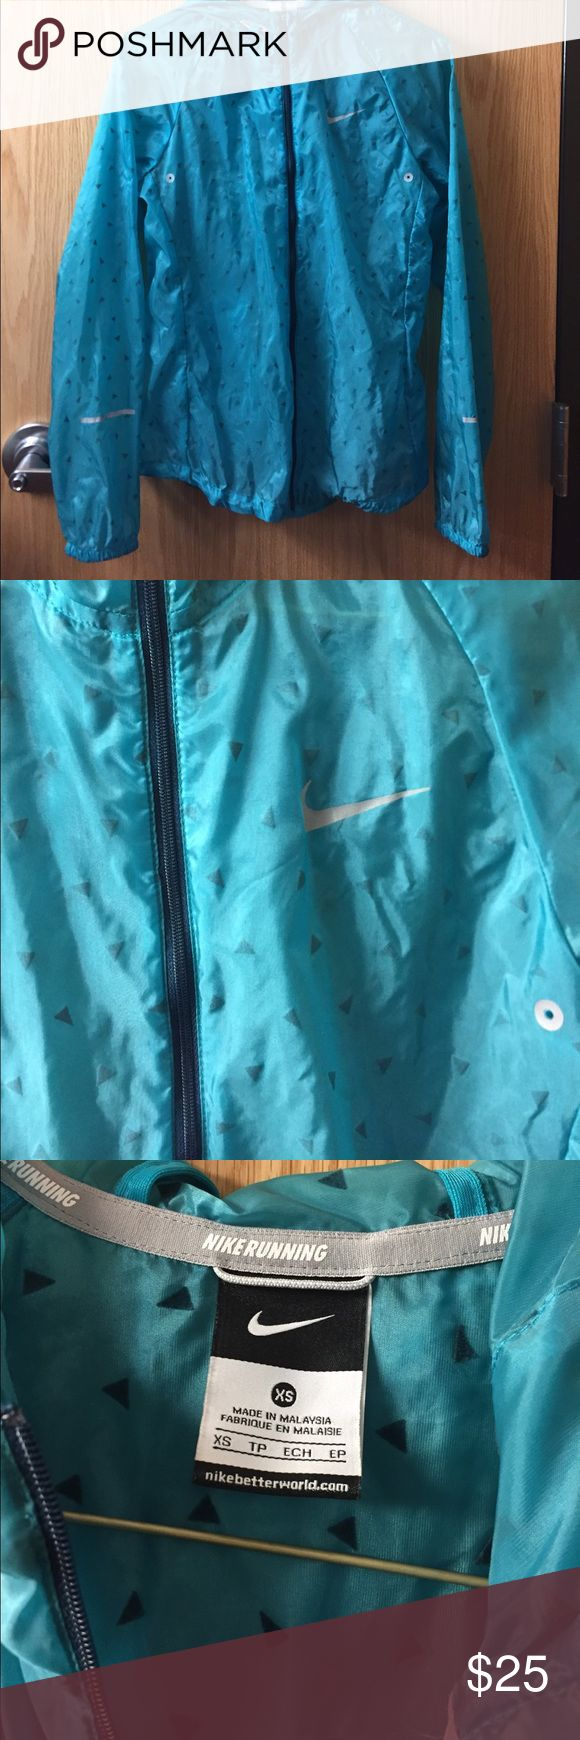 Nike Raincoat Perfect light raincoat! Color shown best in 2nd photo, more of a turquoise color. EUC. Nike Jackets & Coats